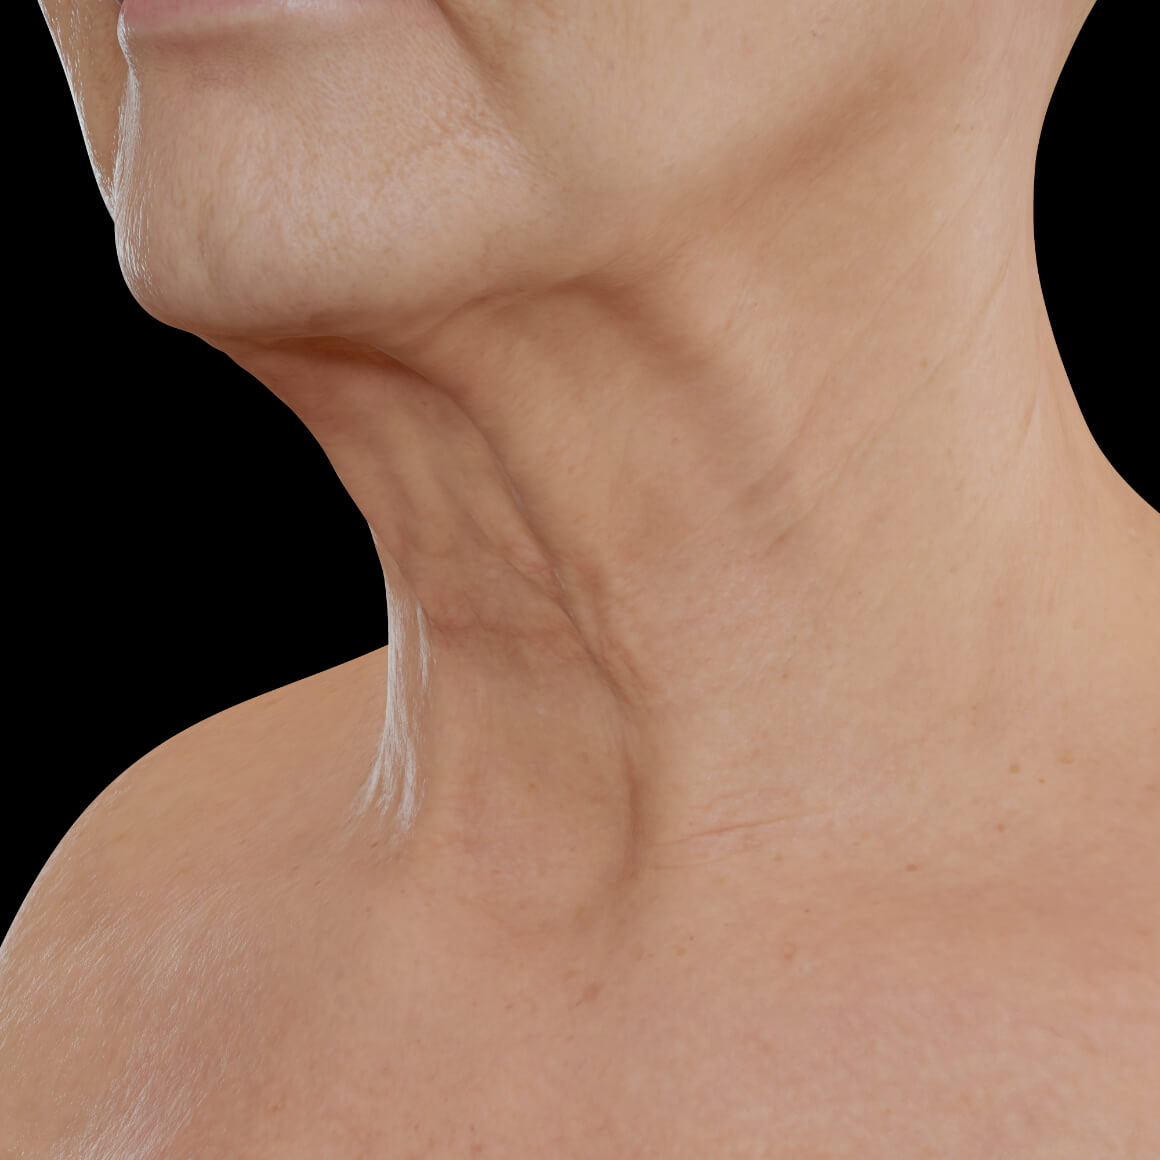 Female patient from Clinique Chloé positioned at an angle with wrinkles and noticeable platysmal cords in the neck area